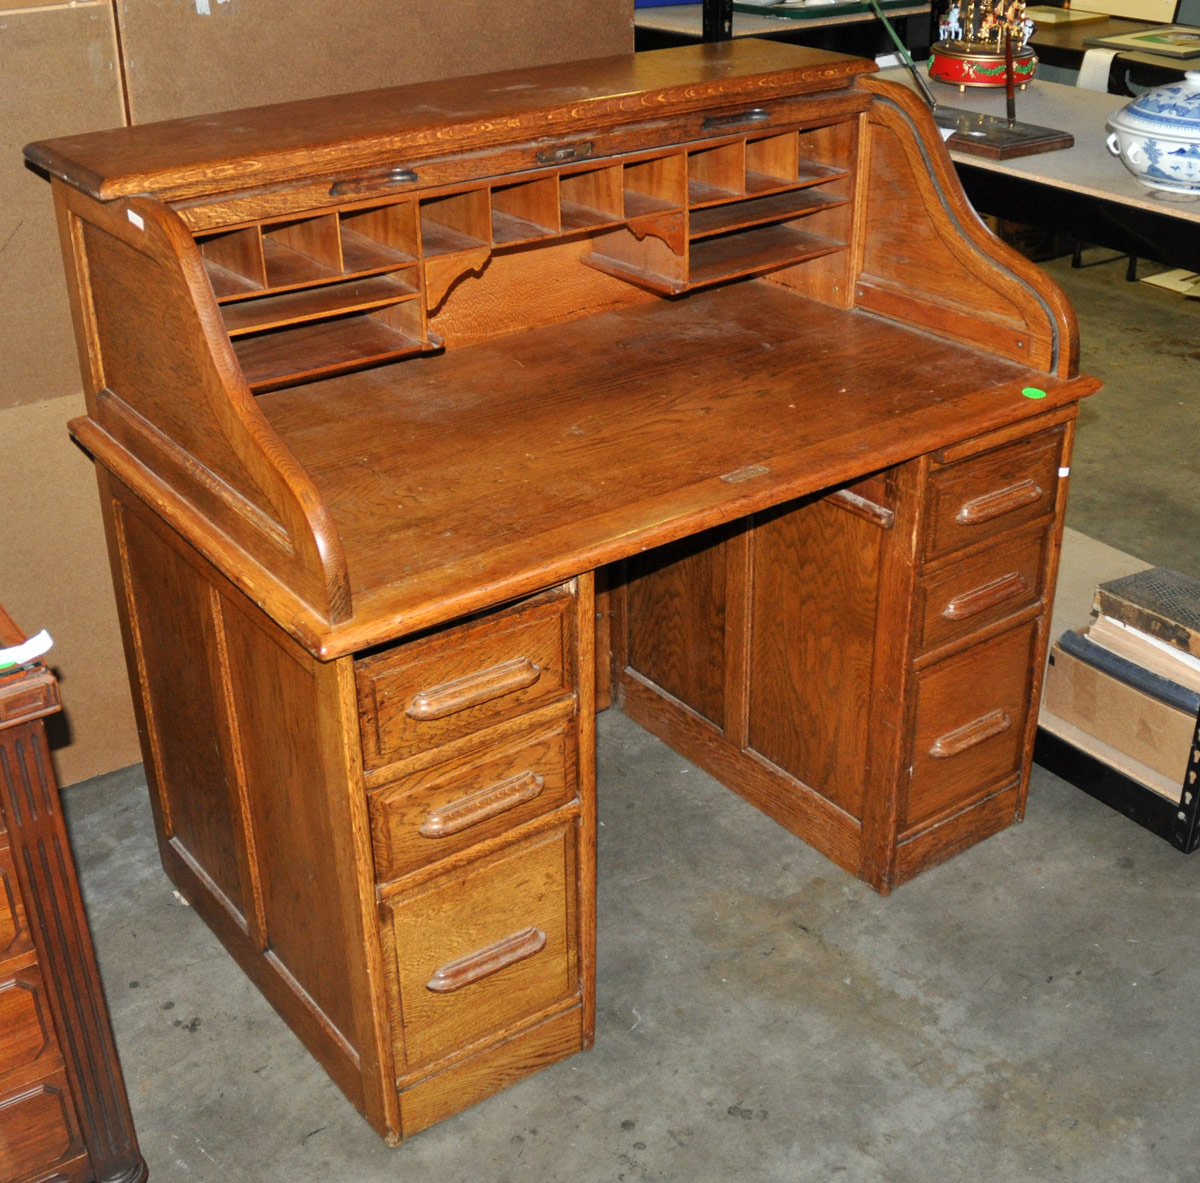 Auction company 751 walnut victorian marble top parlor table ca 1870 - 24